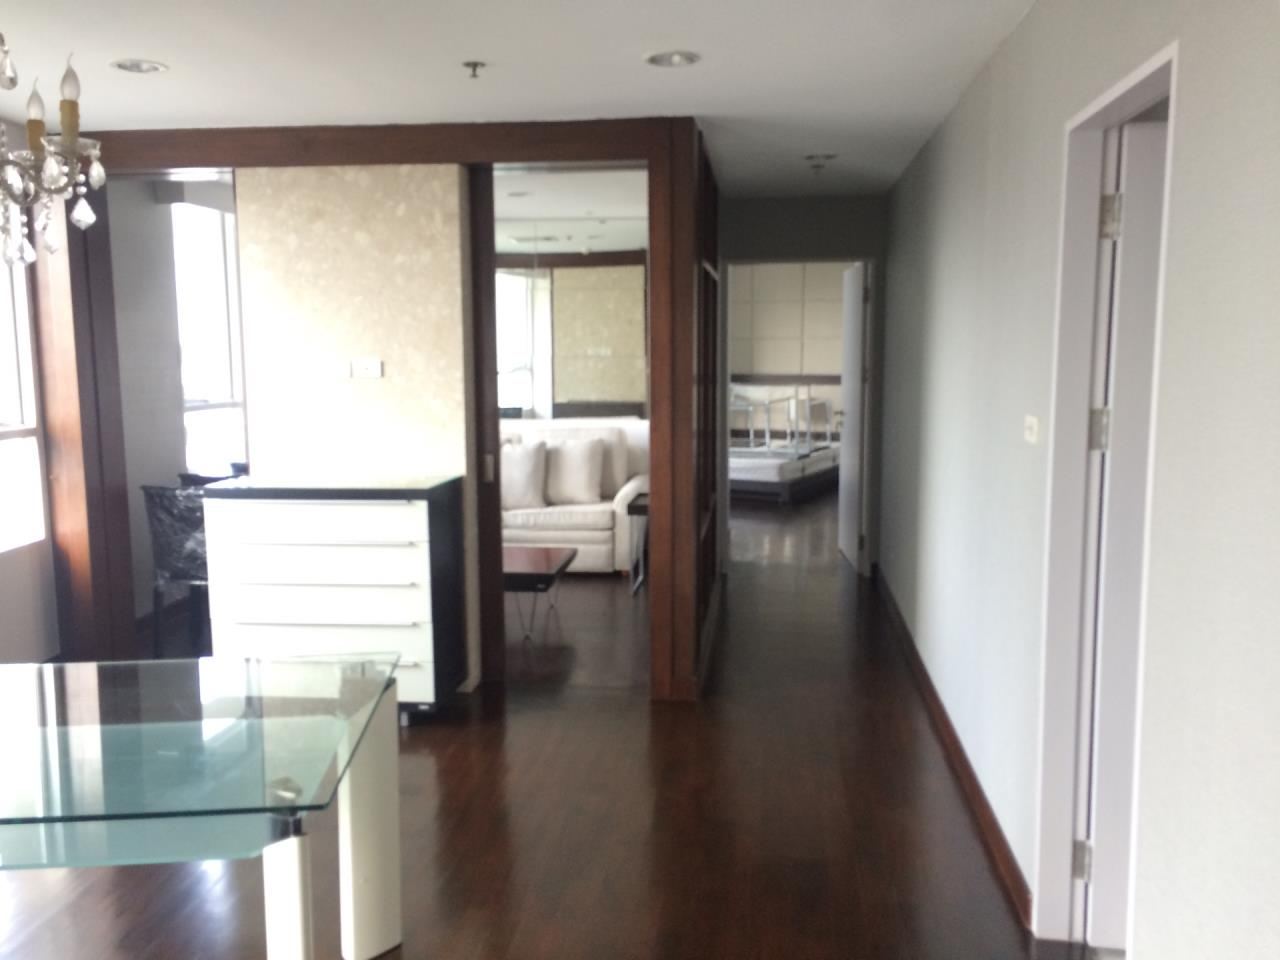 Quality Life Property Agency's 2-BEDROOM CONDO FOR RENT IN URBANA LANGSUAN 9 FOOR 9